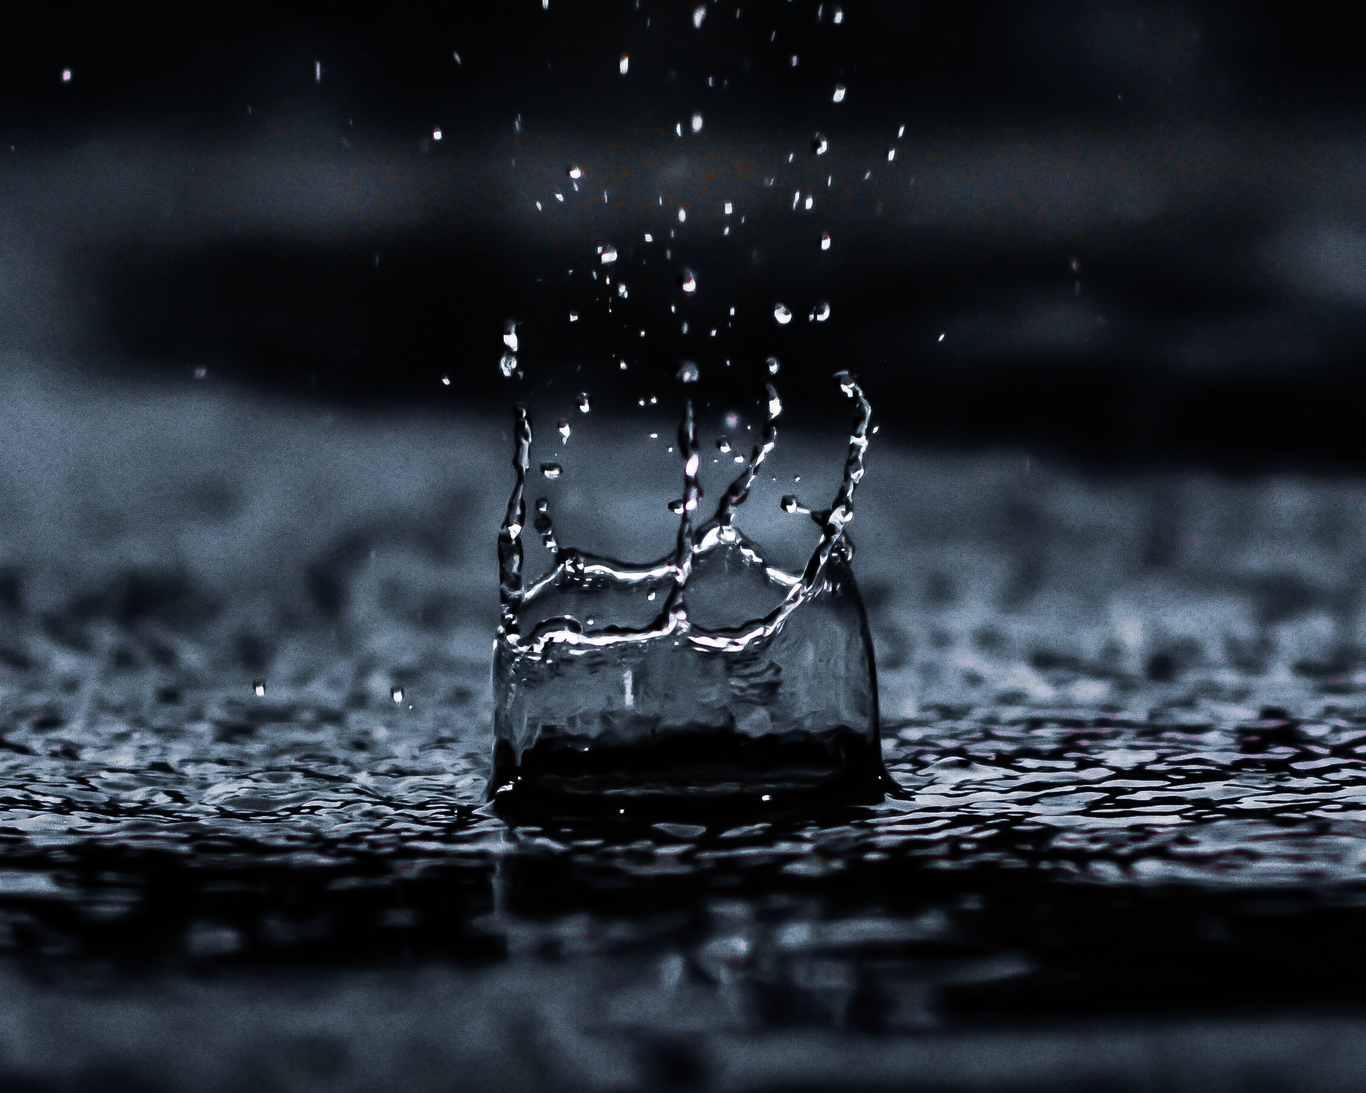 Water droplet digital wallpaper 1100946